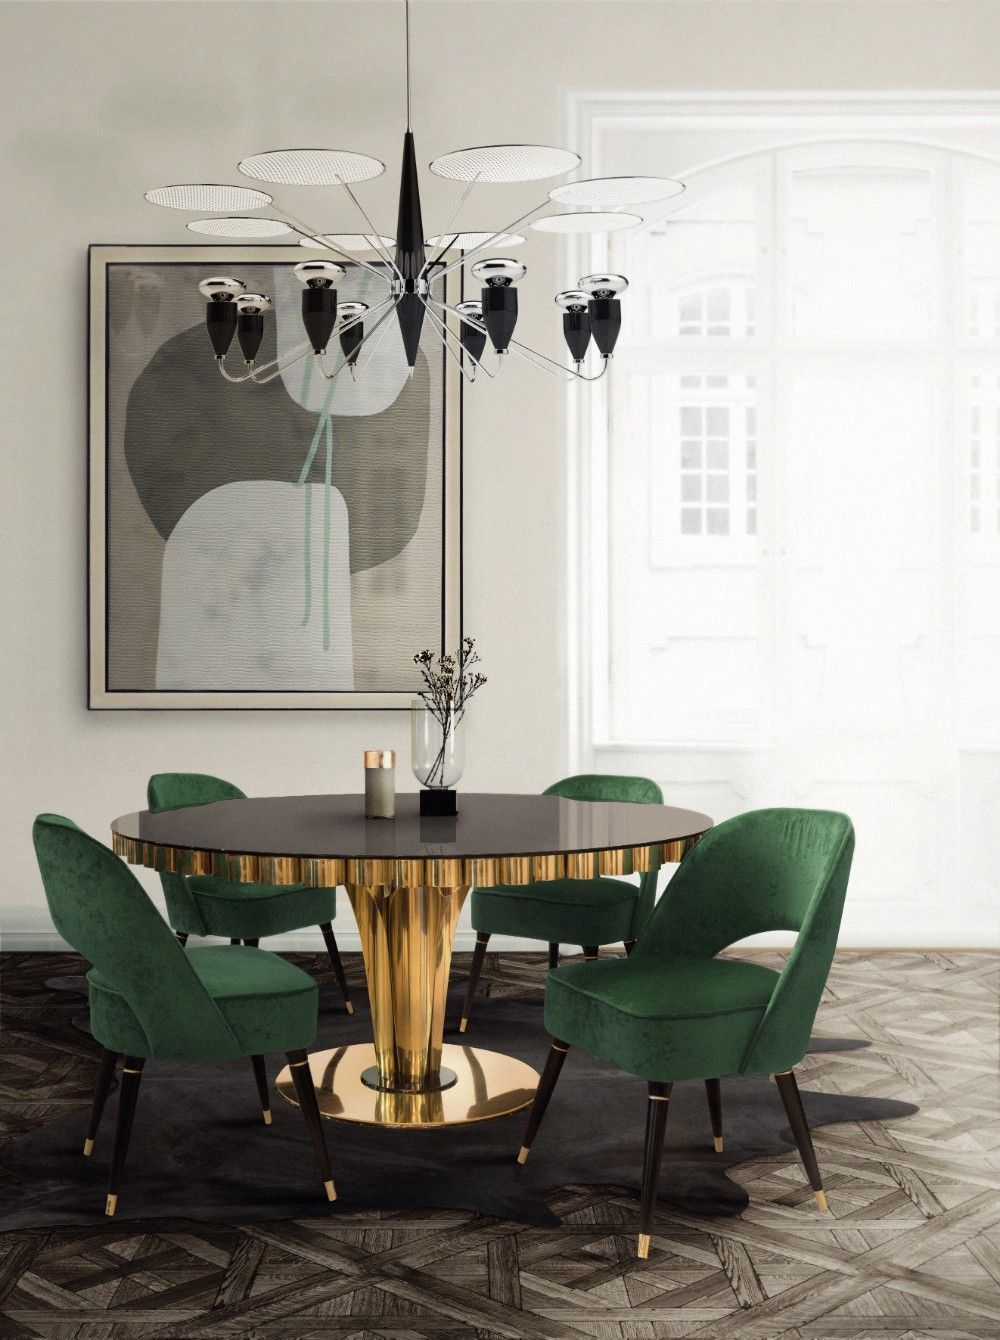 Modern Home Interiors And Design Ideas From The Best In Condos Penthouses And Architecture Plus Modern Dining Room Contemporary Home Decor Dining Room Design